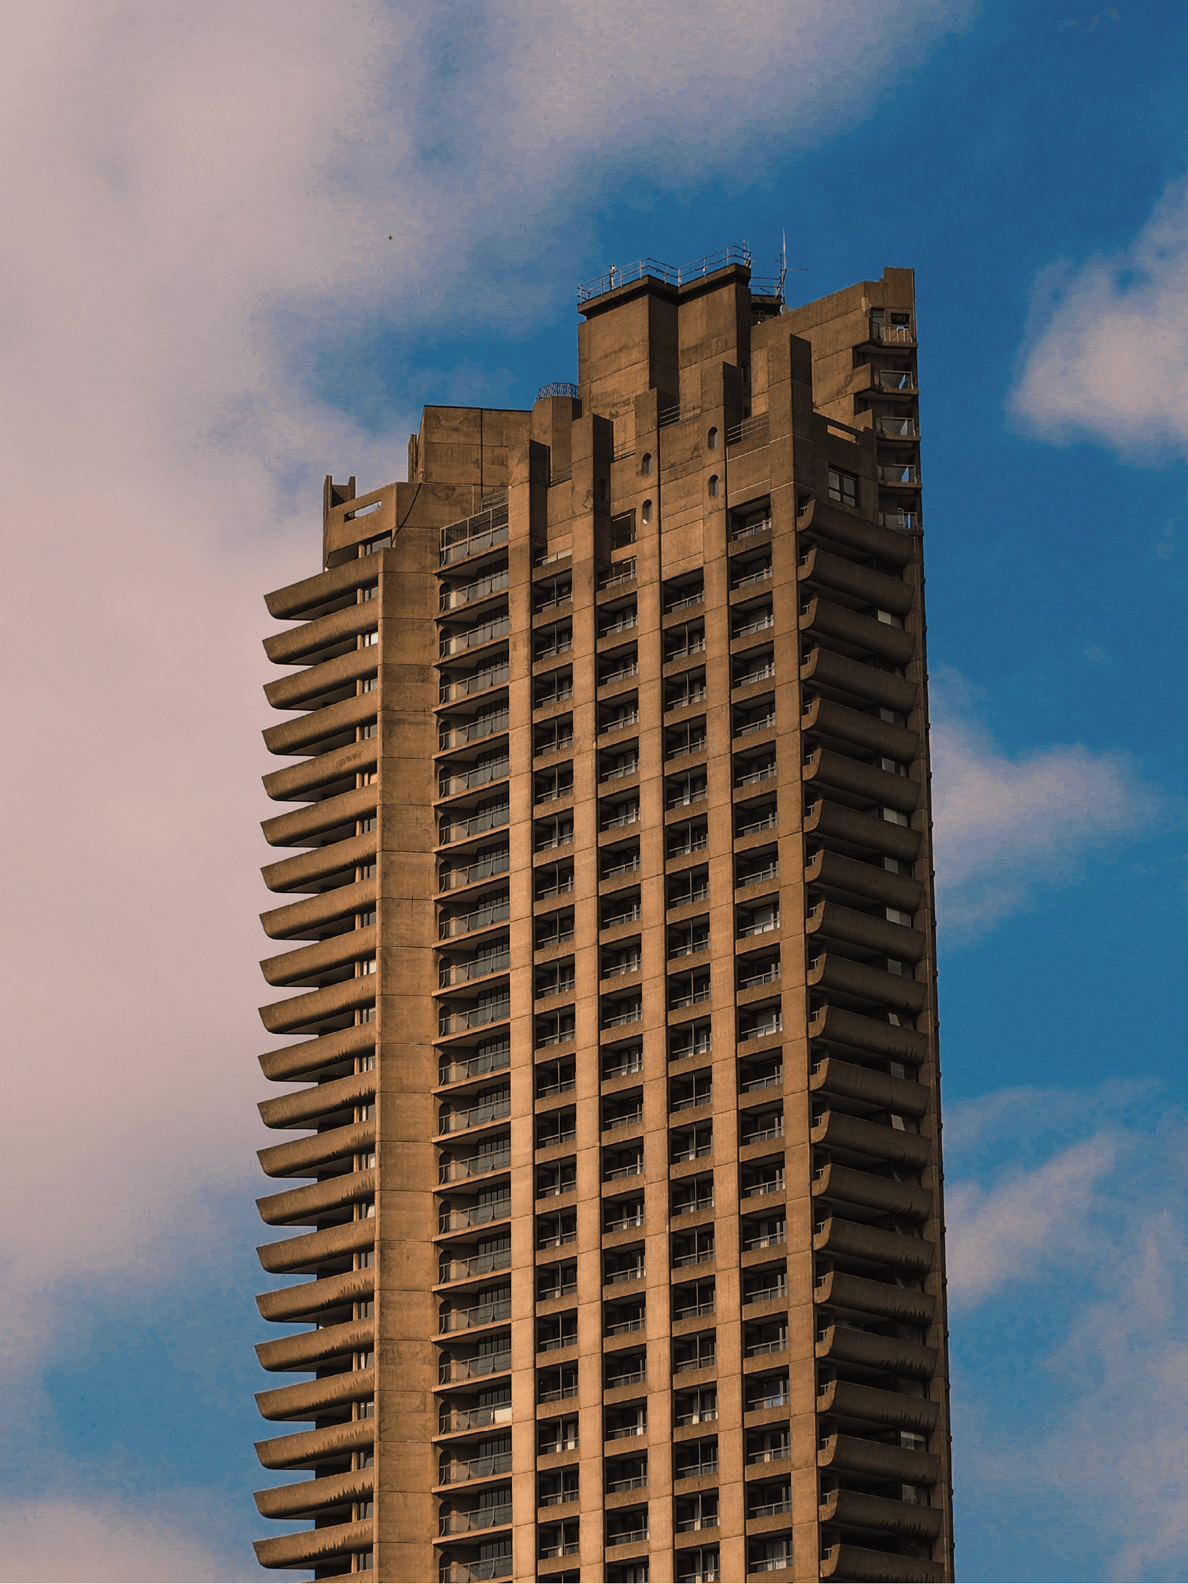 The Barbican Estate of London, my first encounter with a work of Brutalism